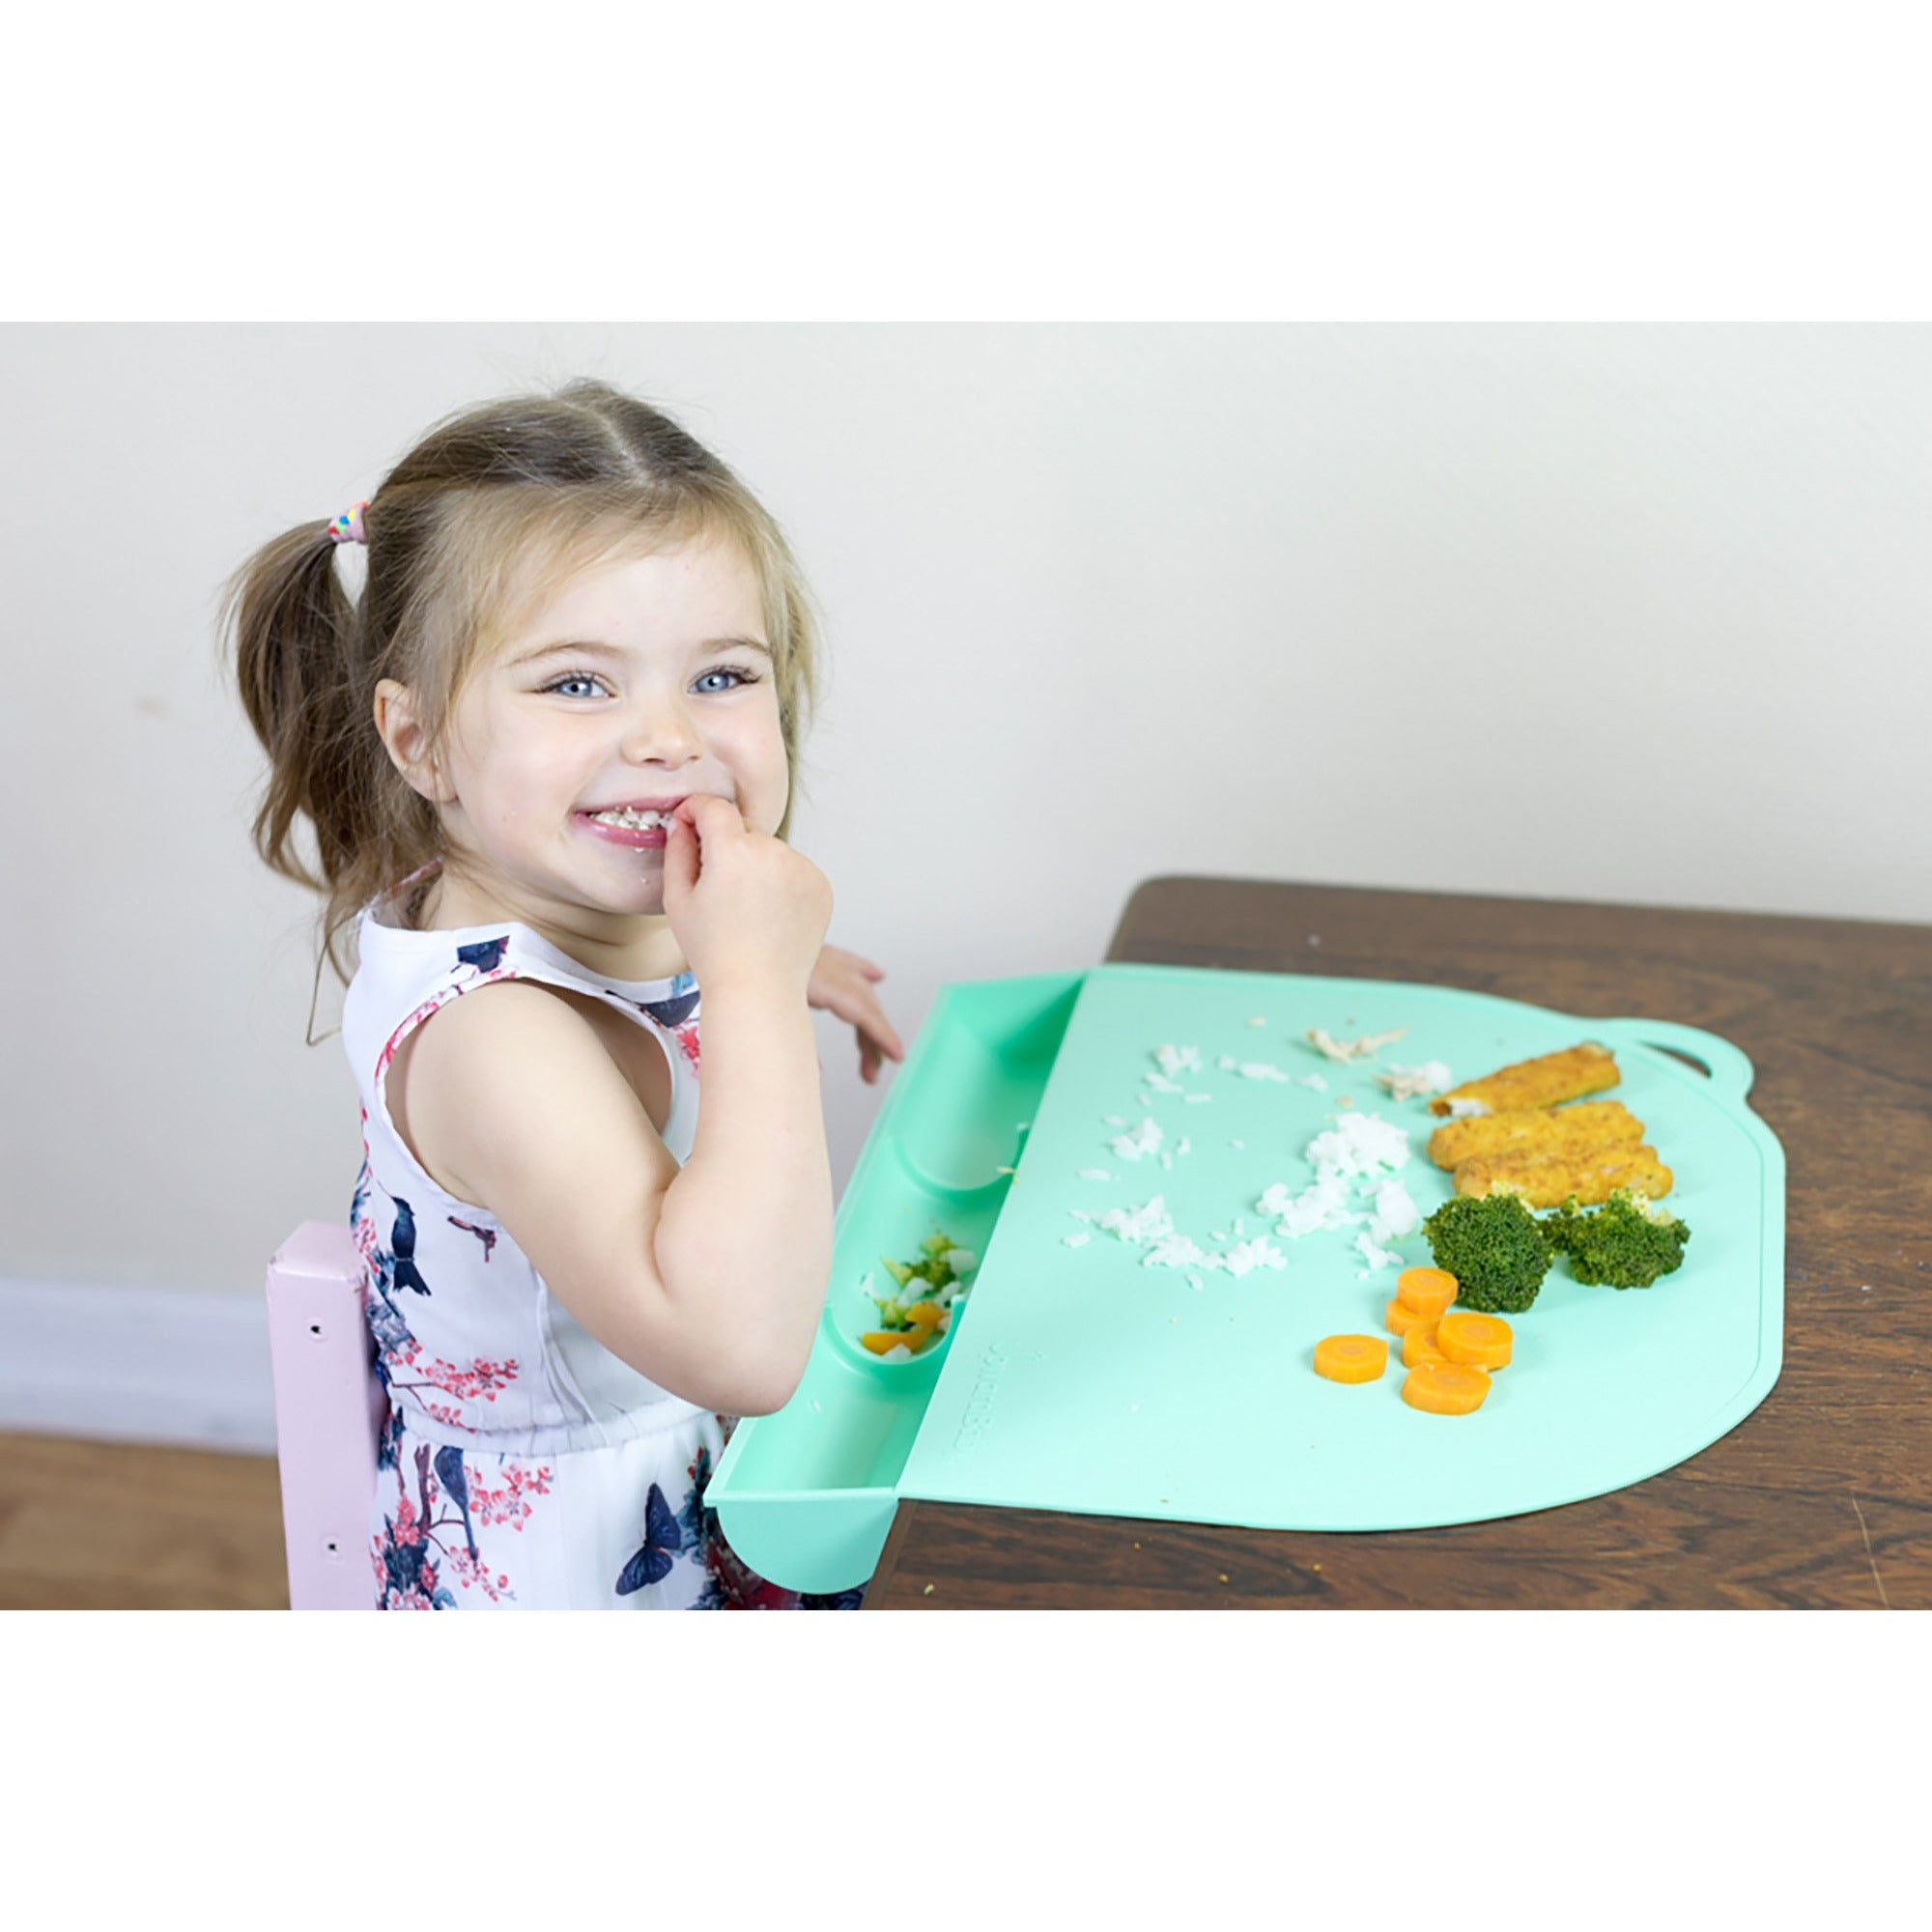 UpwardBaby Silicone Food Catching Suction Placemat - Mint